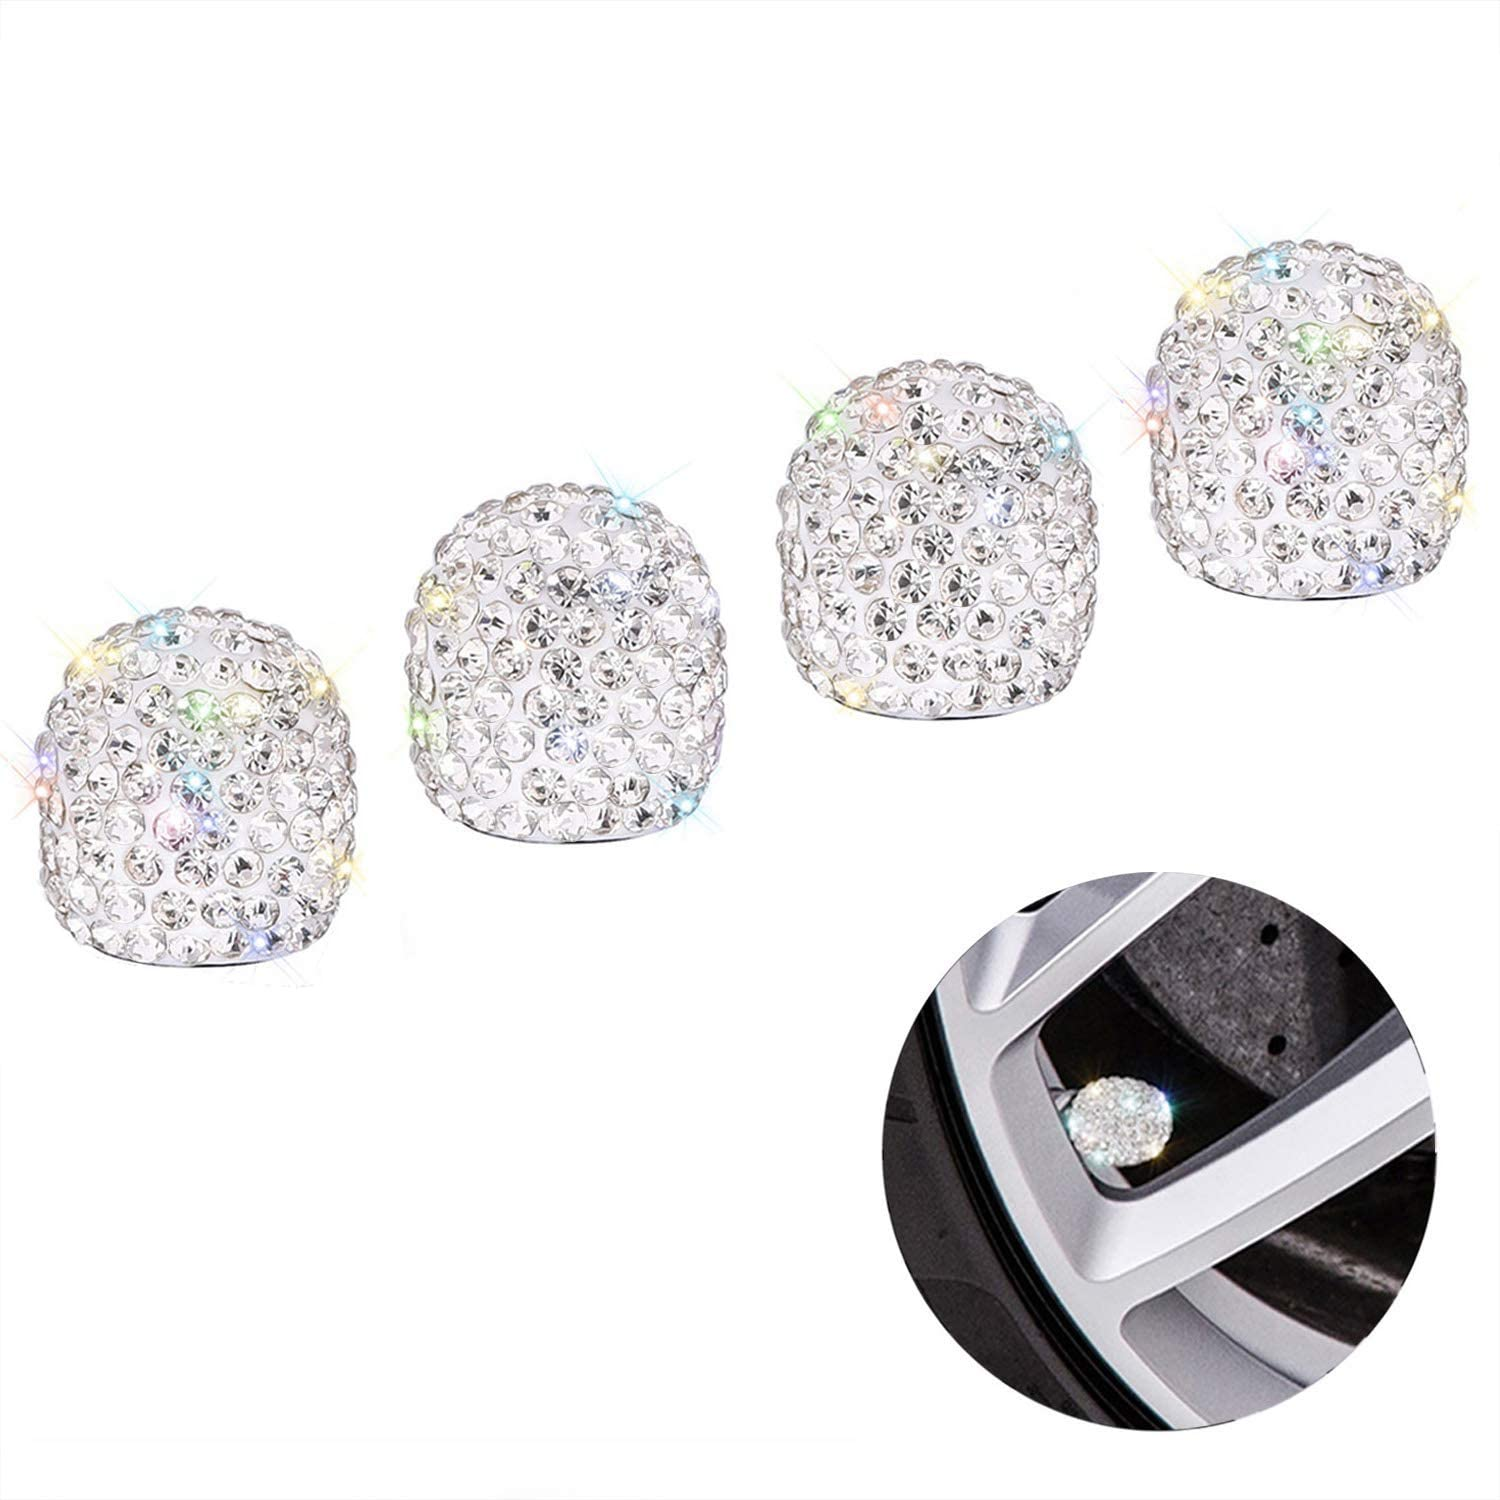 Tense Bling Valve Stem Caps Luxury Car Accessories for Women 4 Pack Bling Crystal Rhinestone Universal Tire Valve Caps with 2 Pack Bling Ring for Auto Star Engine Ignition Button Black